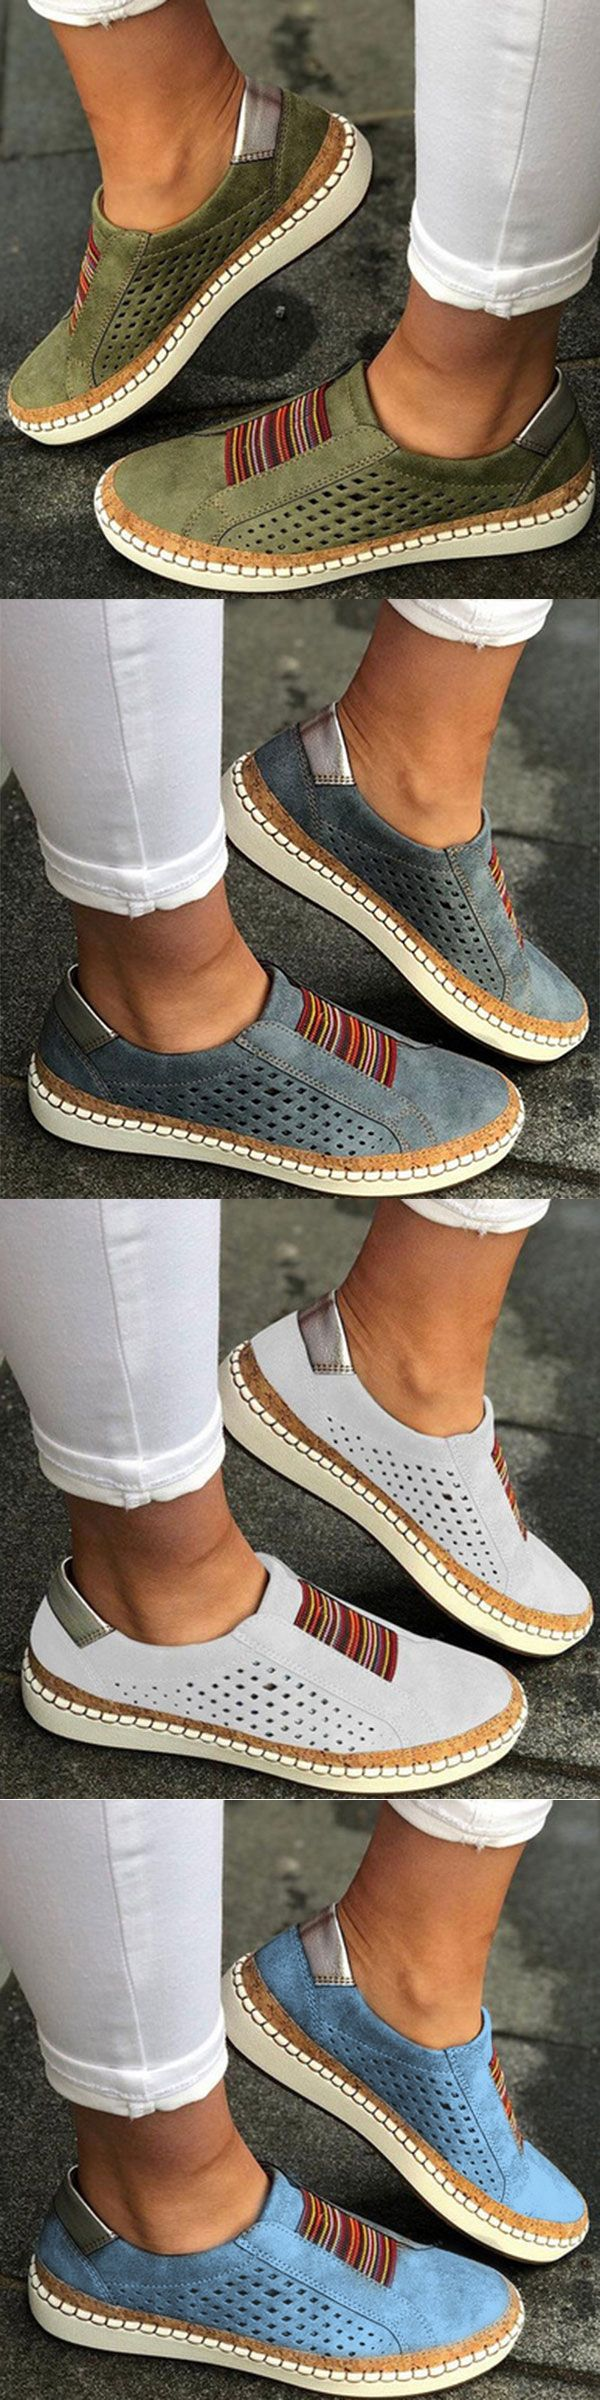 cd47f4b12 Large Size Women Comfortable Hollow Out Splicing Flat Loafers#sale ...